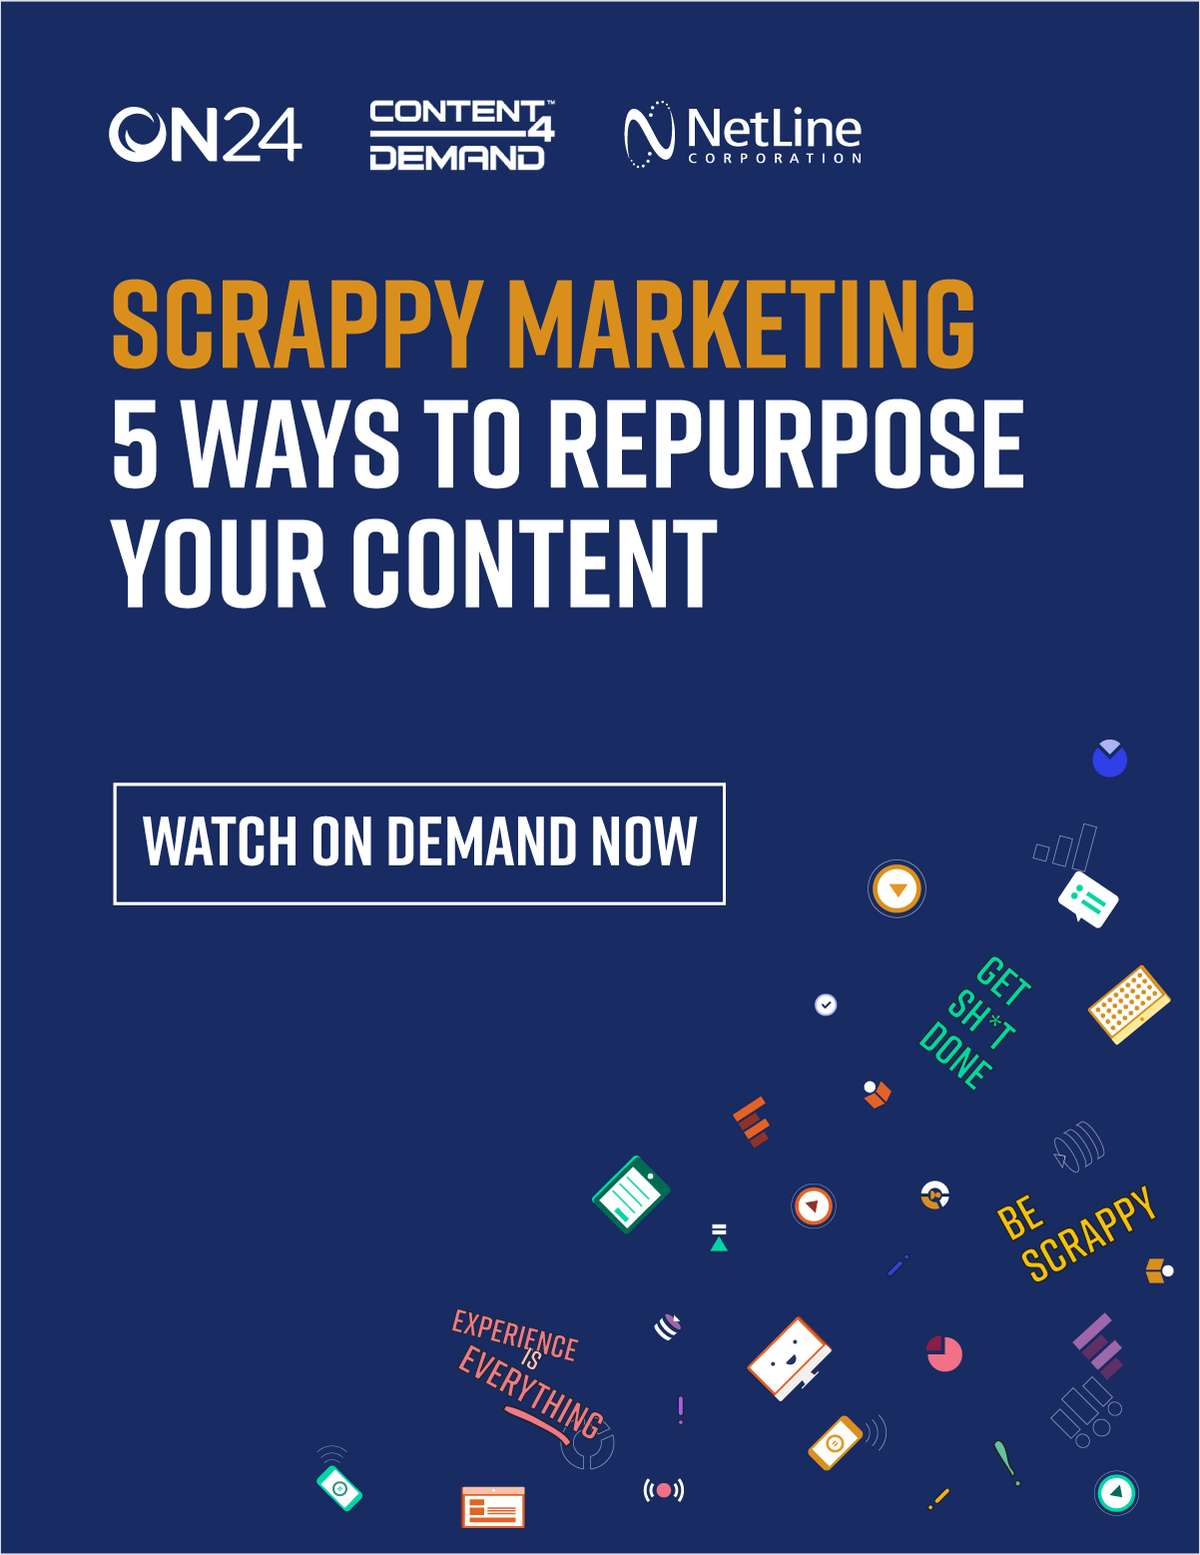 Scrappy Marketing Series: 5 Ways to Repurpose Your Content